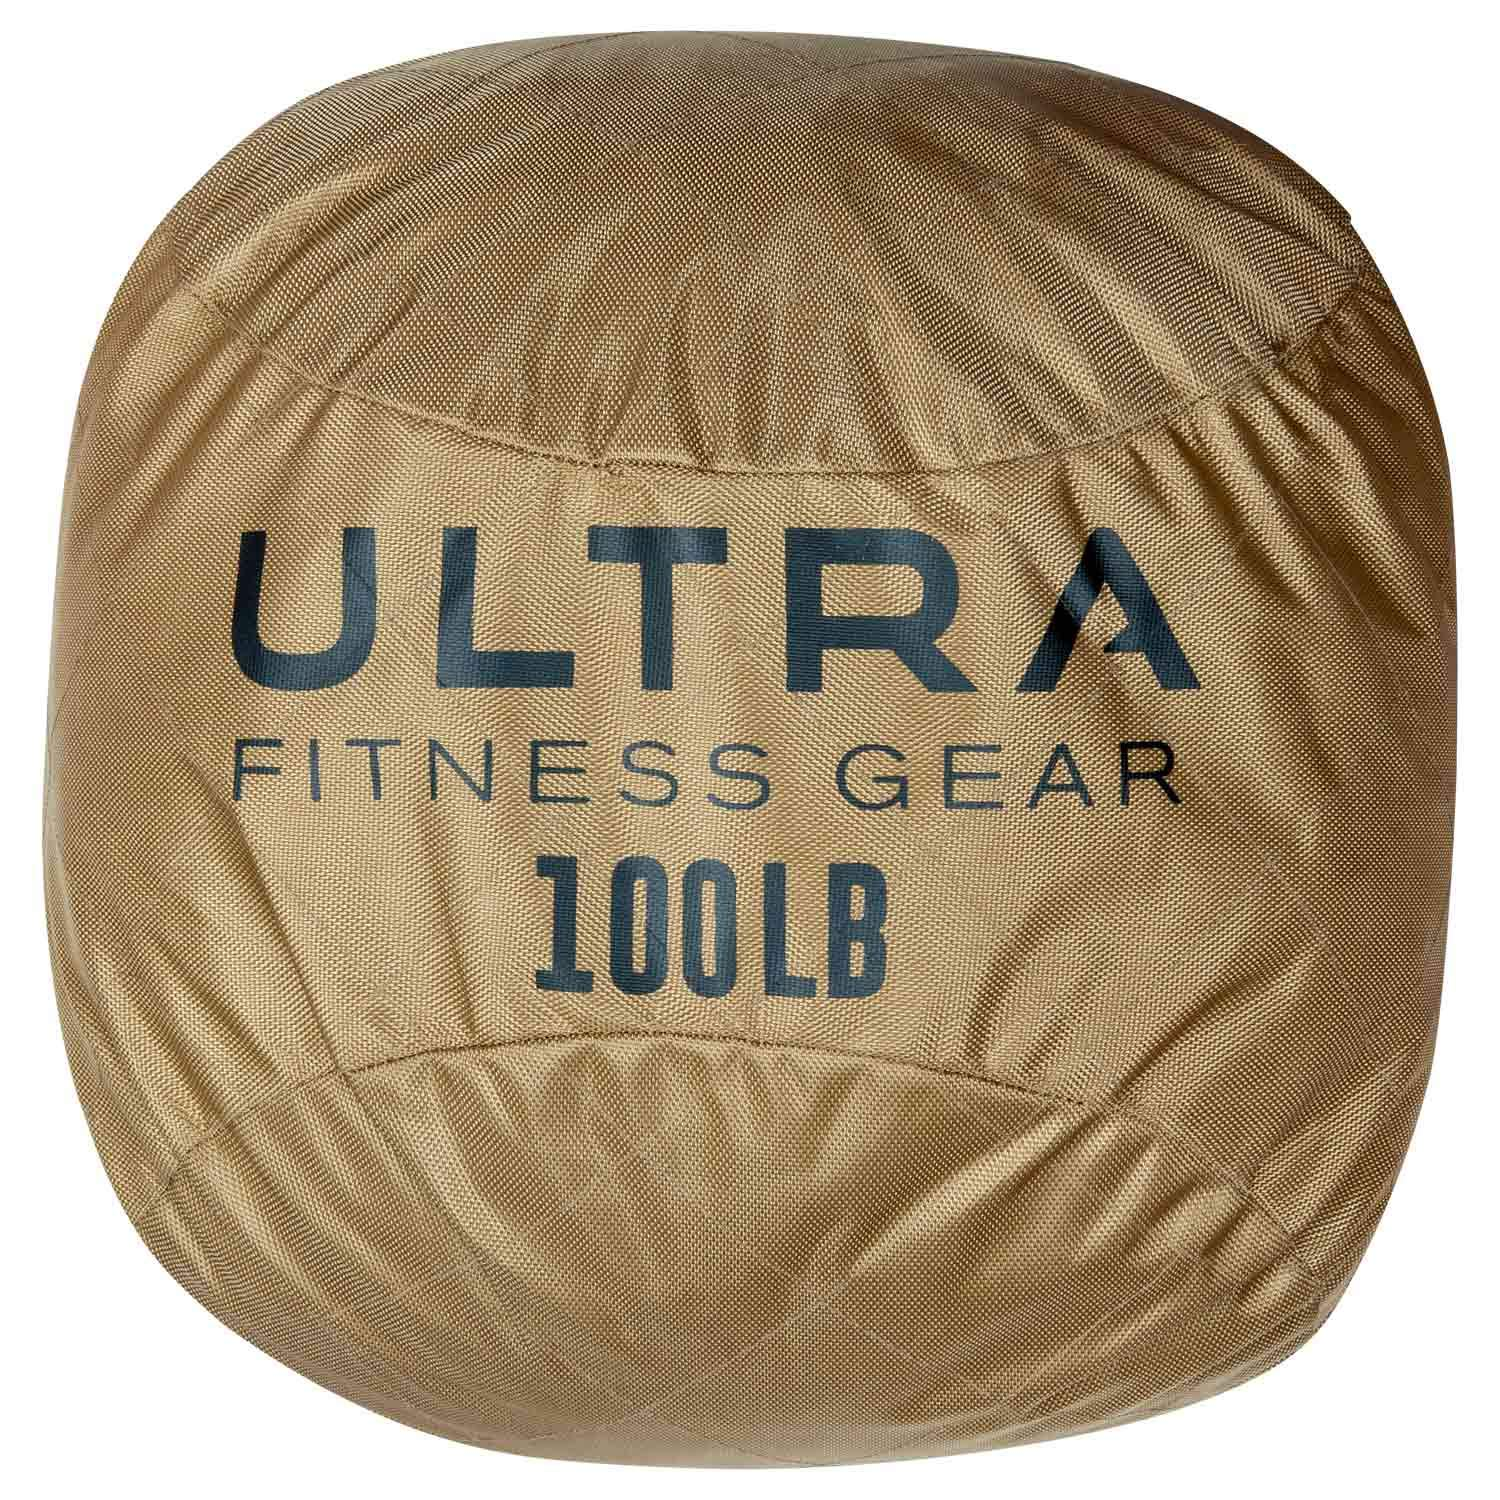 Ultra Fitness Gear Soft Atlas Stone Sandbag, Loadable Up to 100 LB, Includes Ultra Durable Soft Outer Shell and Filler Bag